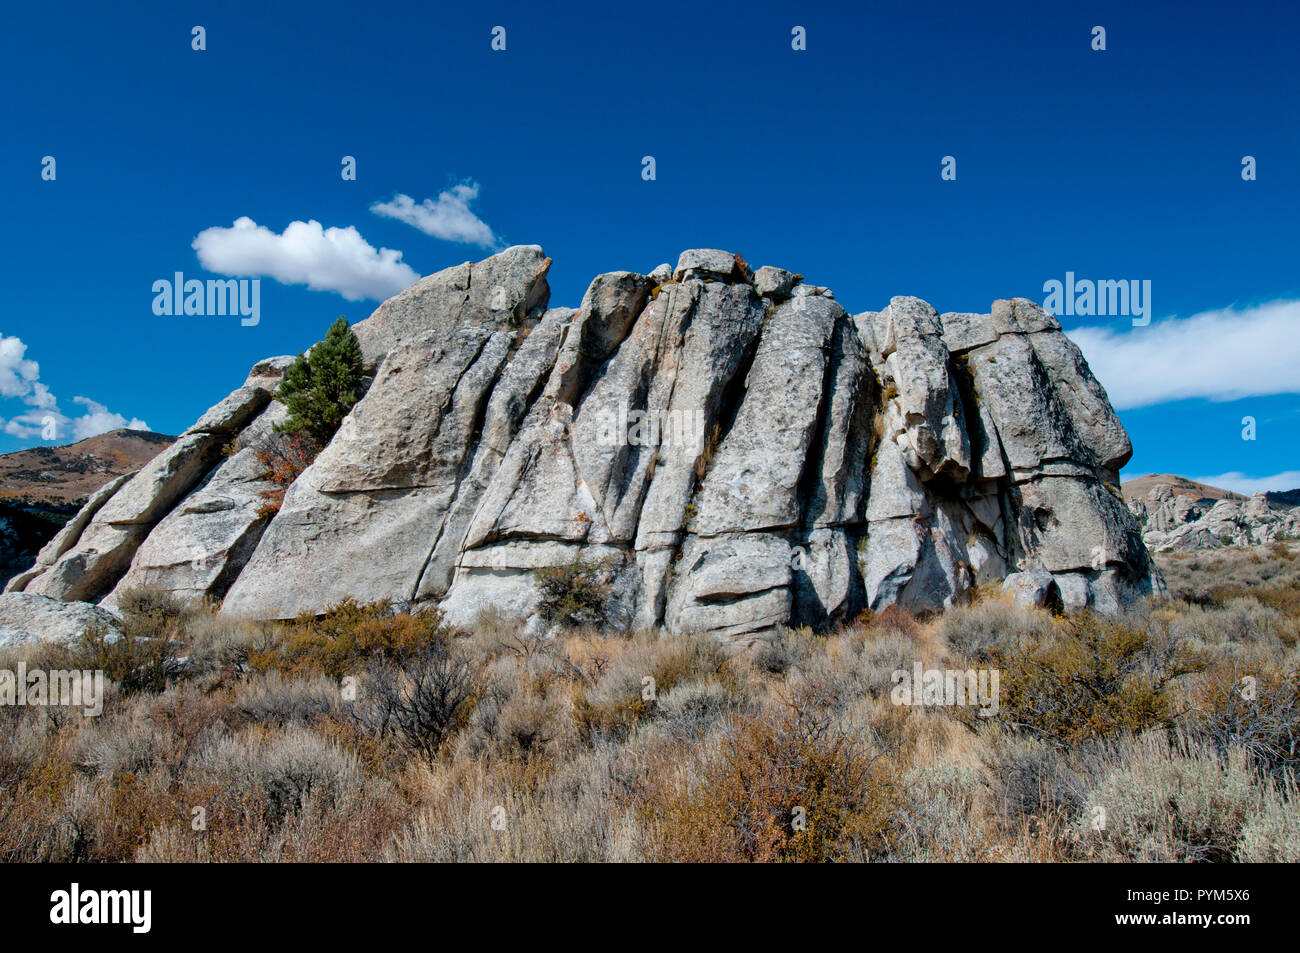 Joints in intrusive granite of the Almo Pluton in the City of Rocks National Reserve Idaho - Stock Image